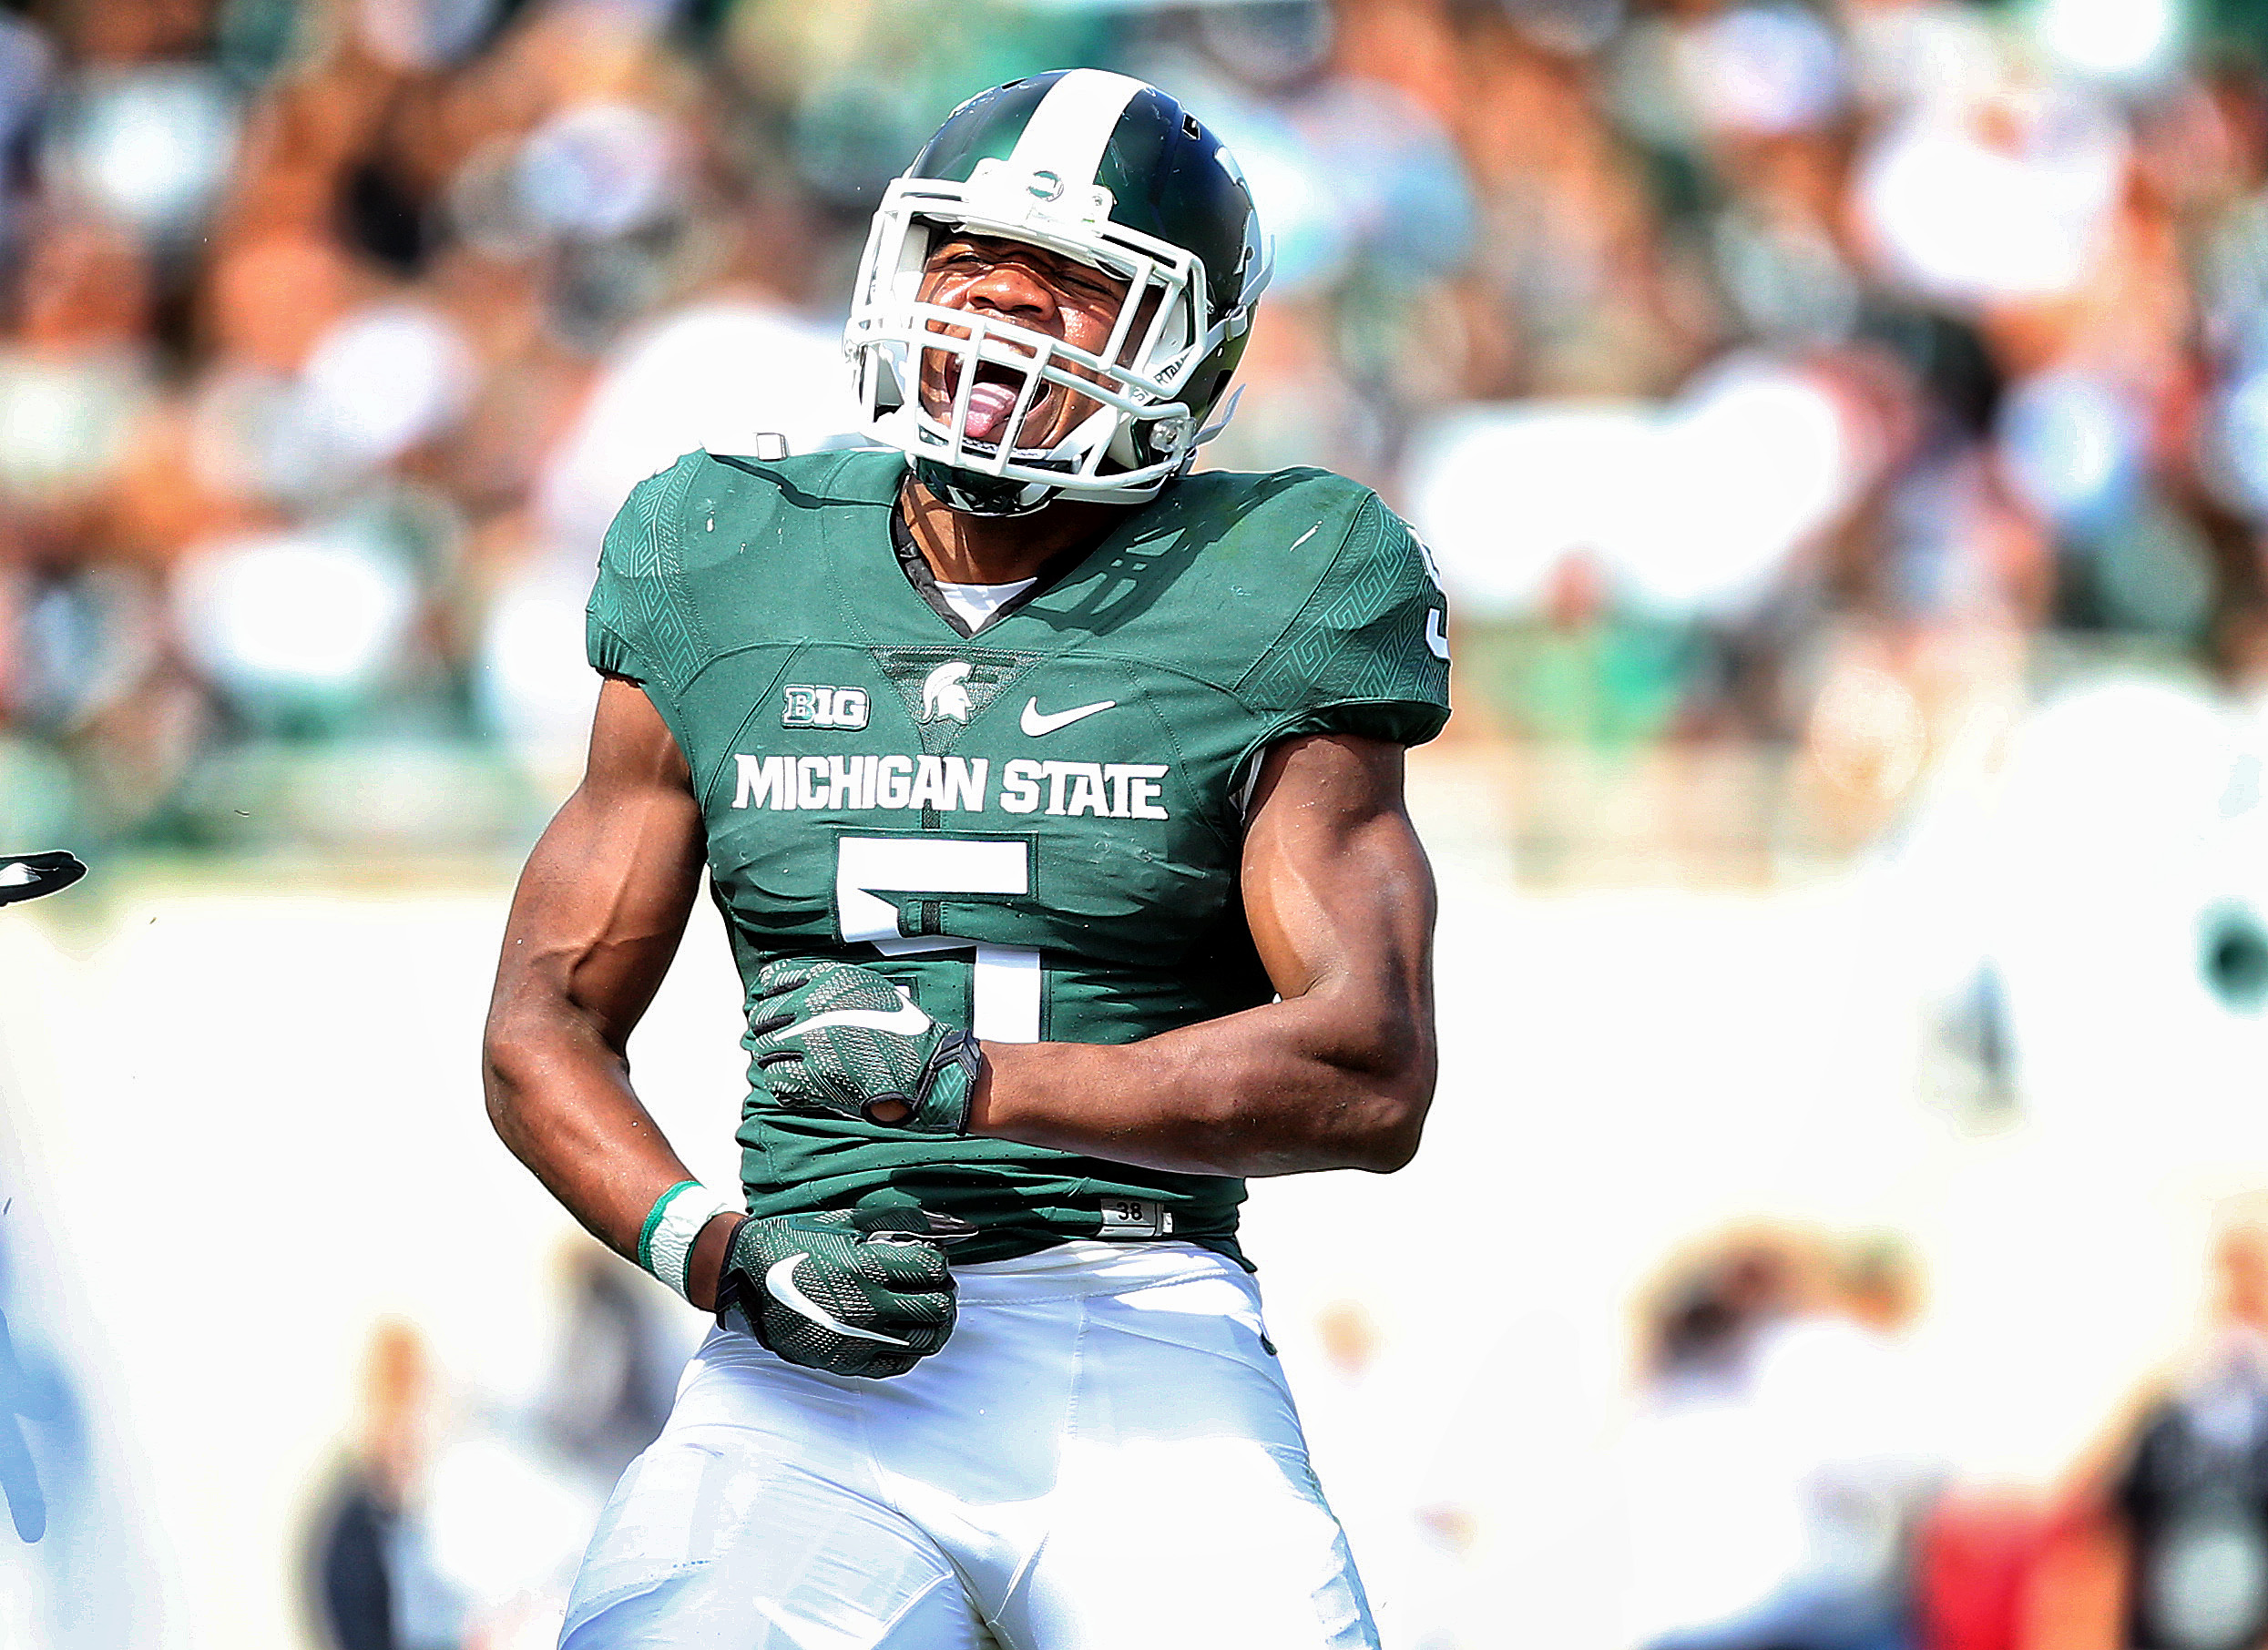 Sep 19, 2015; East Lansing, MI, USA; dMichigan State Spartans linebacker Andrew Dowell (5) celebrates fumble recovery during the 2nd half of a game at Spartan Stadium. MSU won 35-21. Mandatory Credit: Mike Carter-USA TODAY Sports